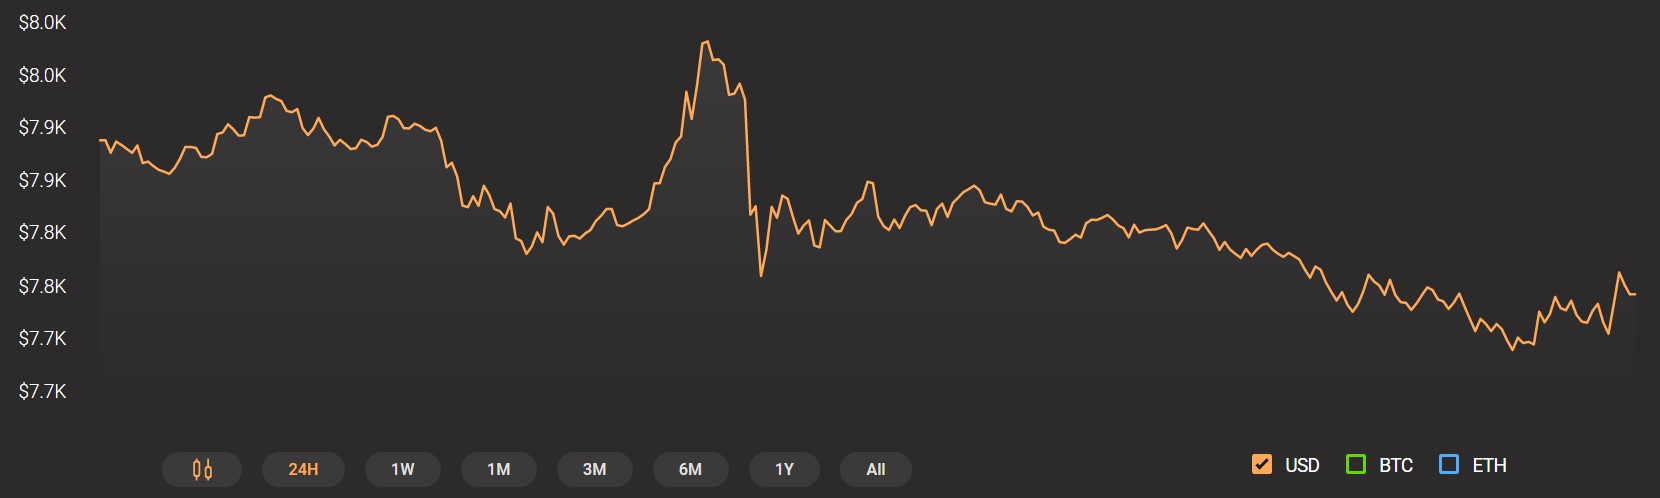 Bitcoin difficulty predicted to reach a new ATH of 15TH/s